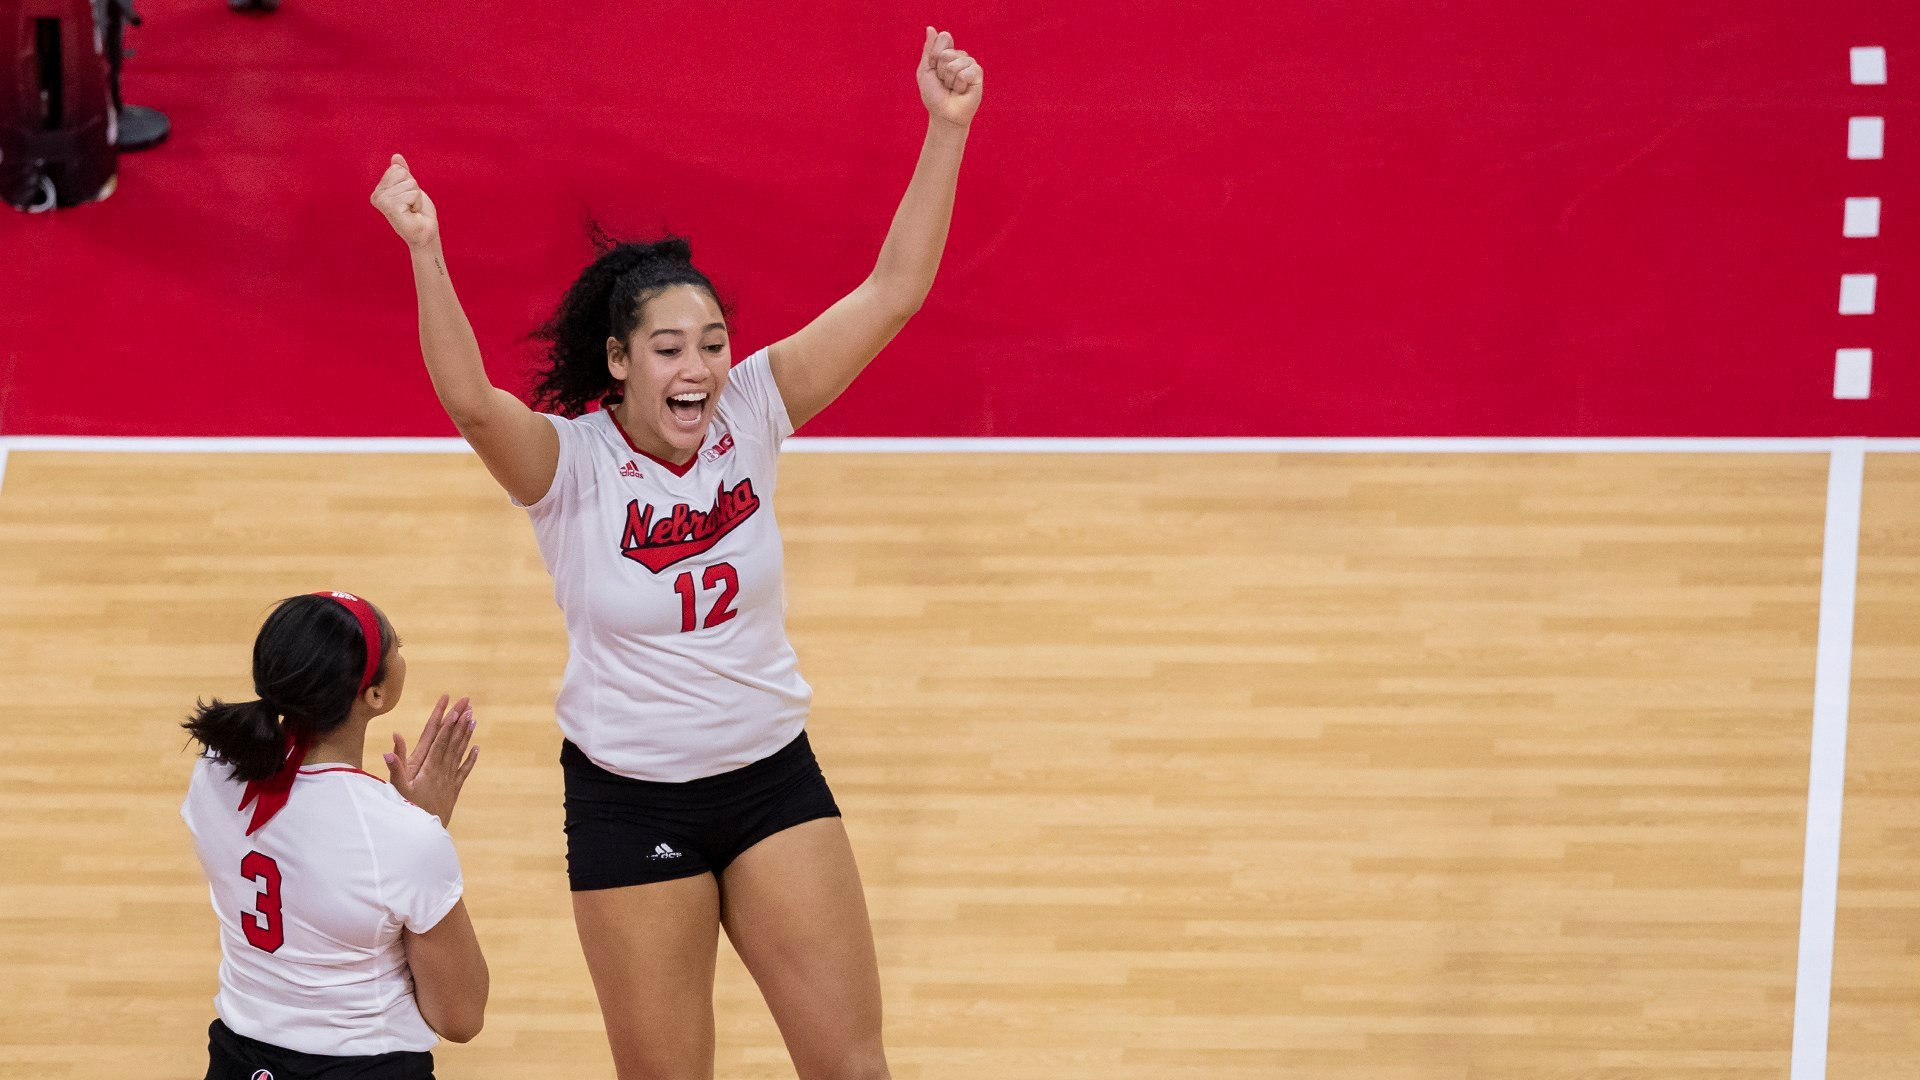 Nebraska beats Texas State, advances to round of 16 for 9th straight year